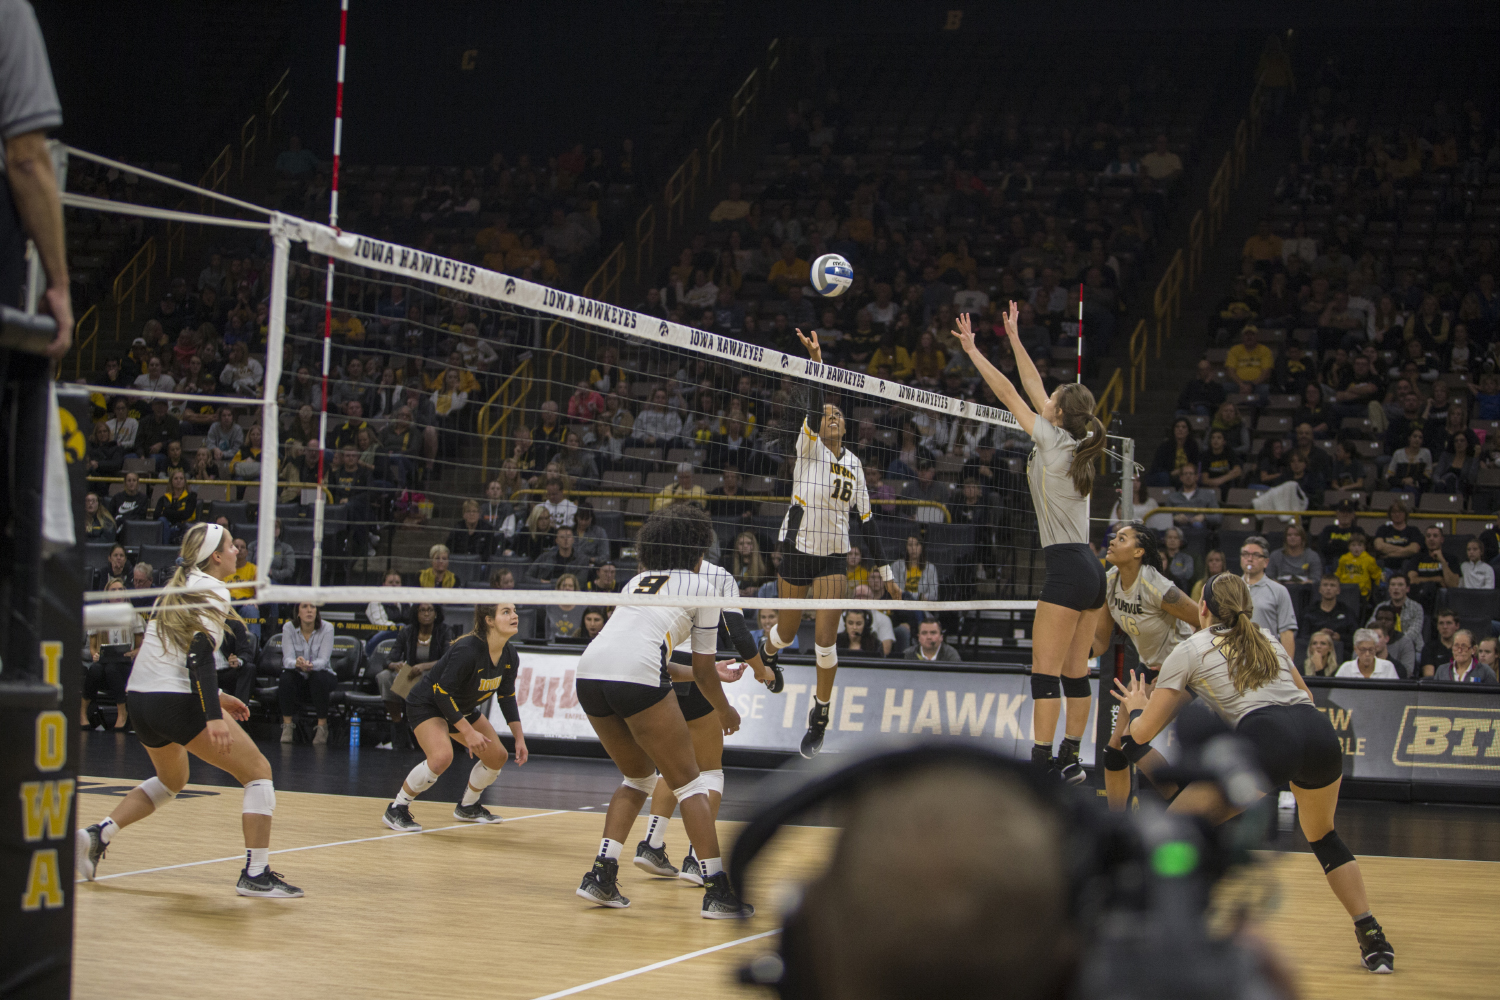 Senior Taylor Louis sends the ball over the net during Iowa volleyball against Purdue at Carver-Hawkeye Arena in Iowa City on Saturday, Oct. 13, 2018. Purdue defeated Iowa 3-2.